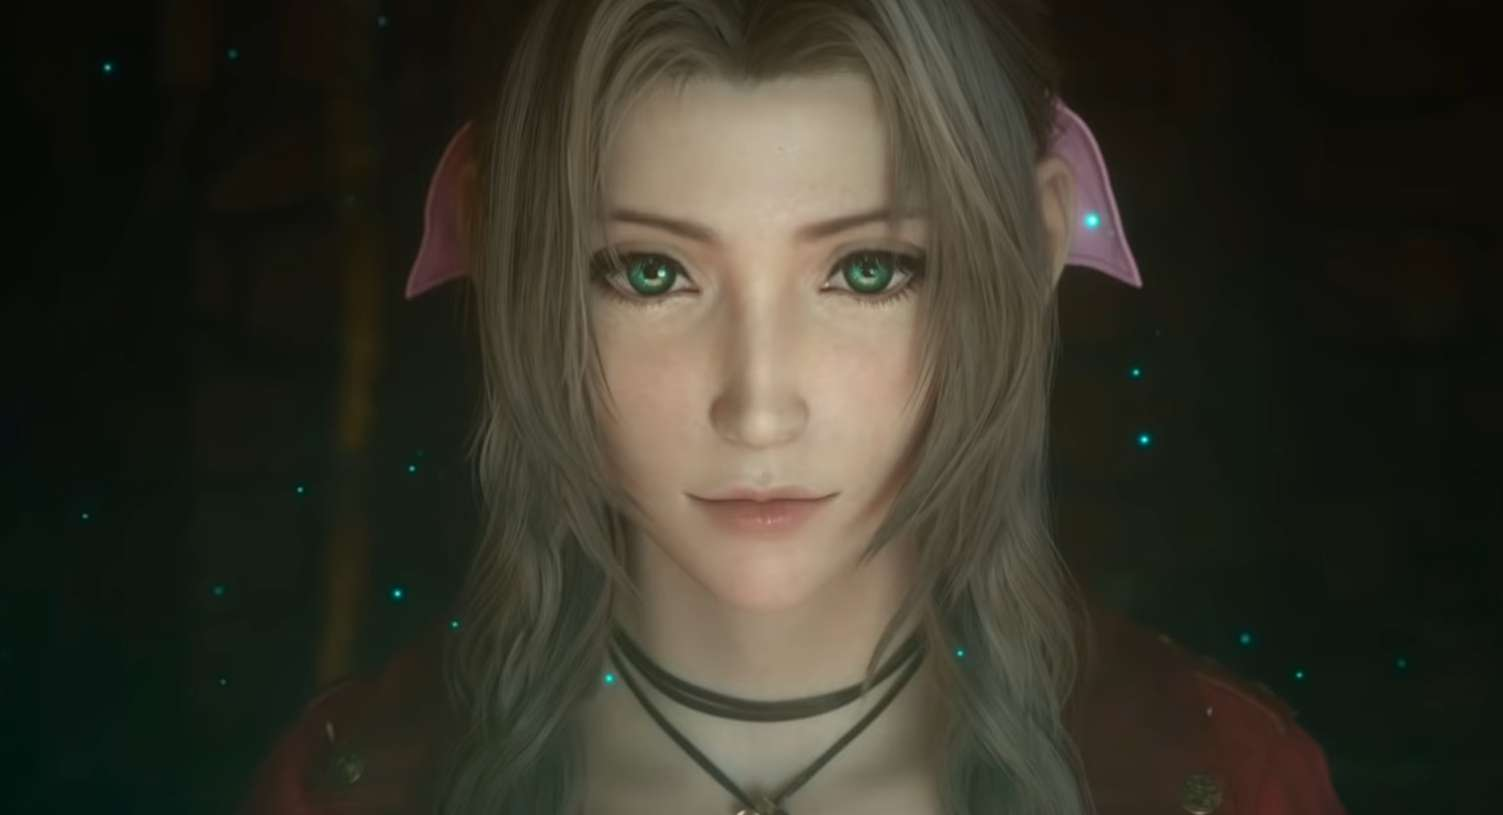 The Speedrunning Community Is Having A Ball With The Demo For Final Fantasy VII Remake